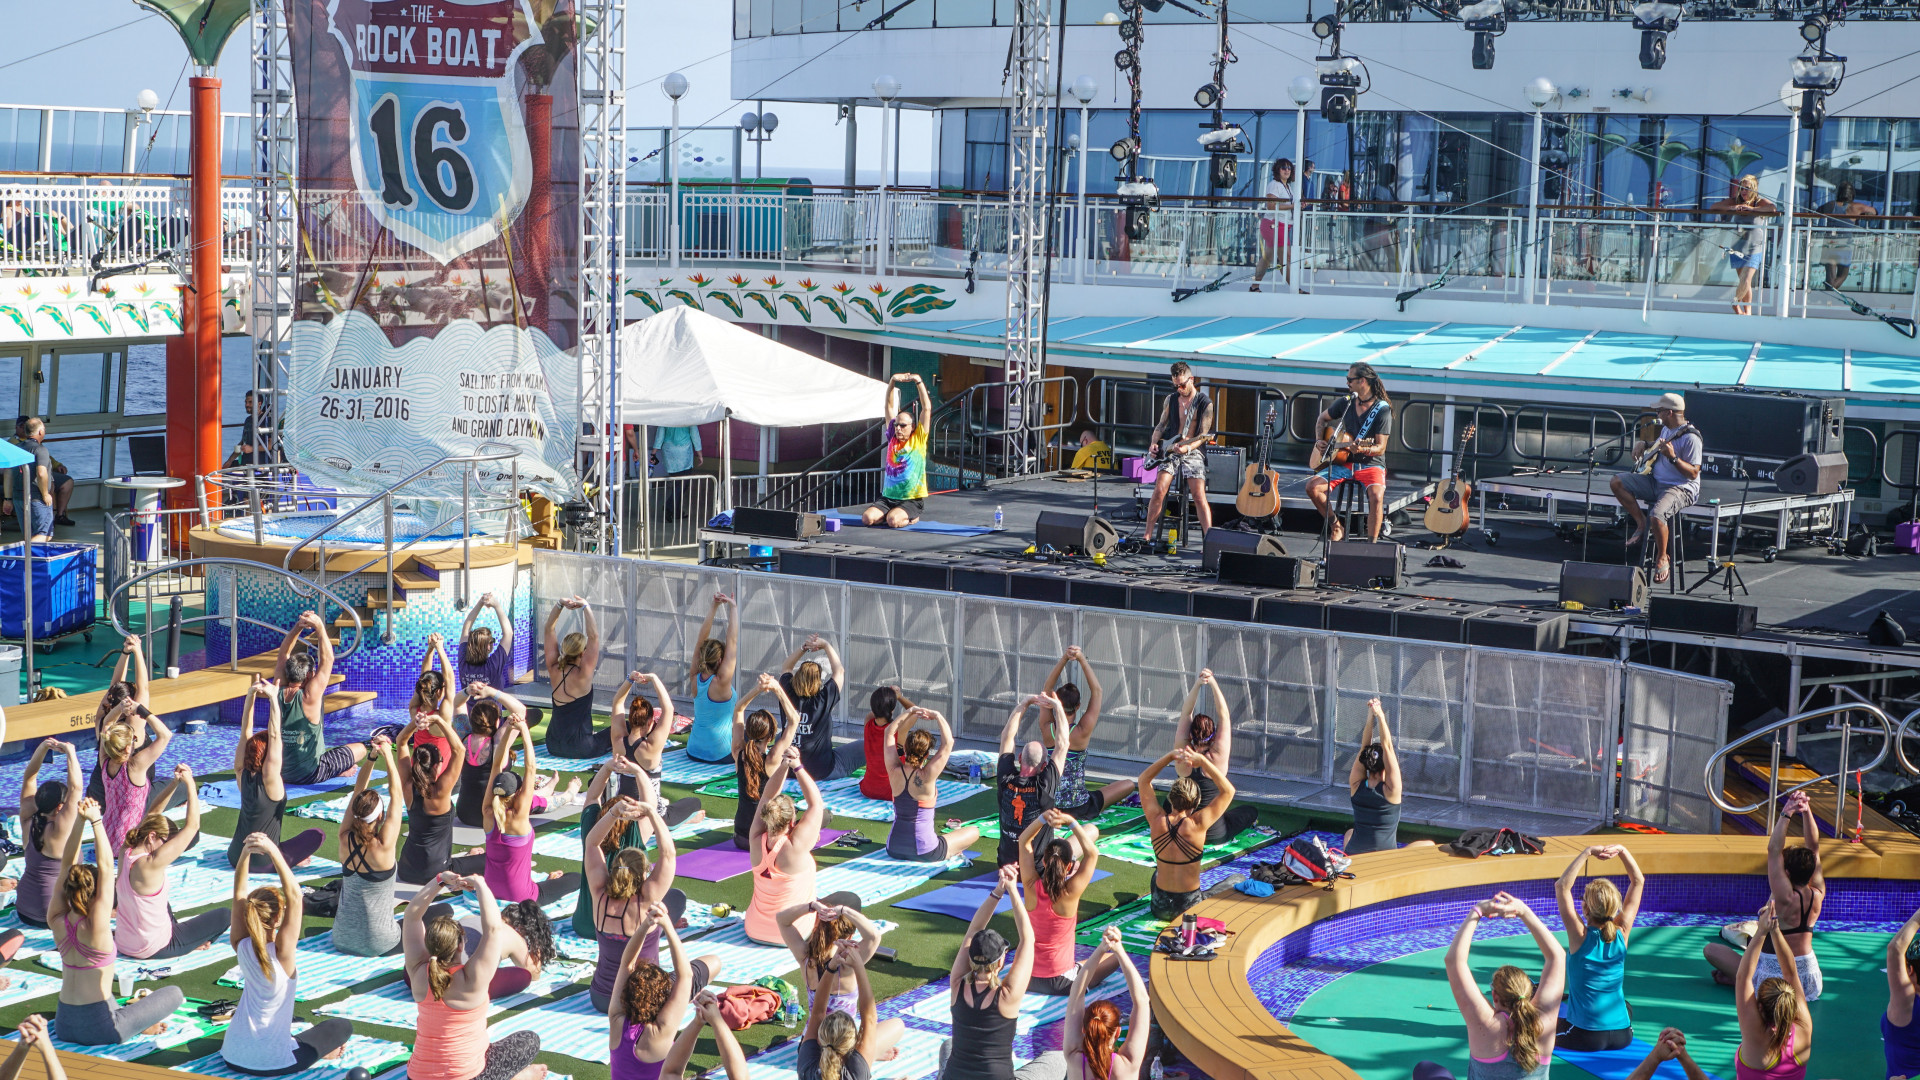 Yoga sessions at The Rock Boat music festival